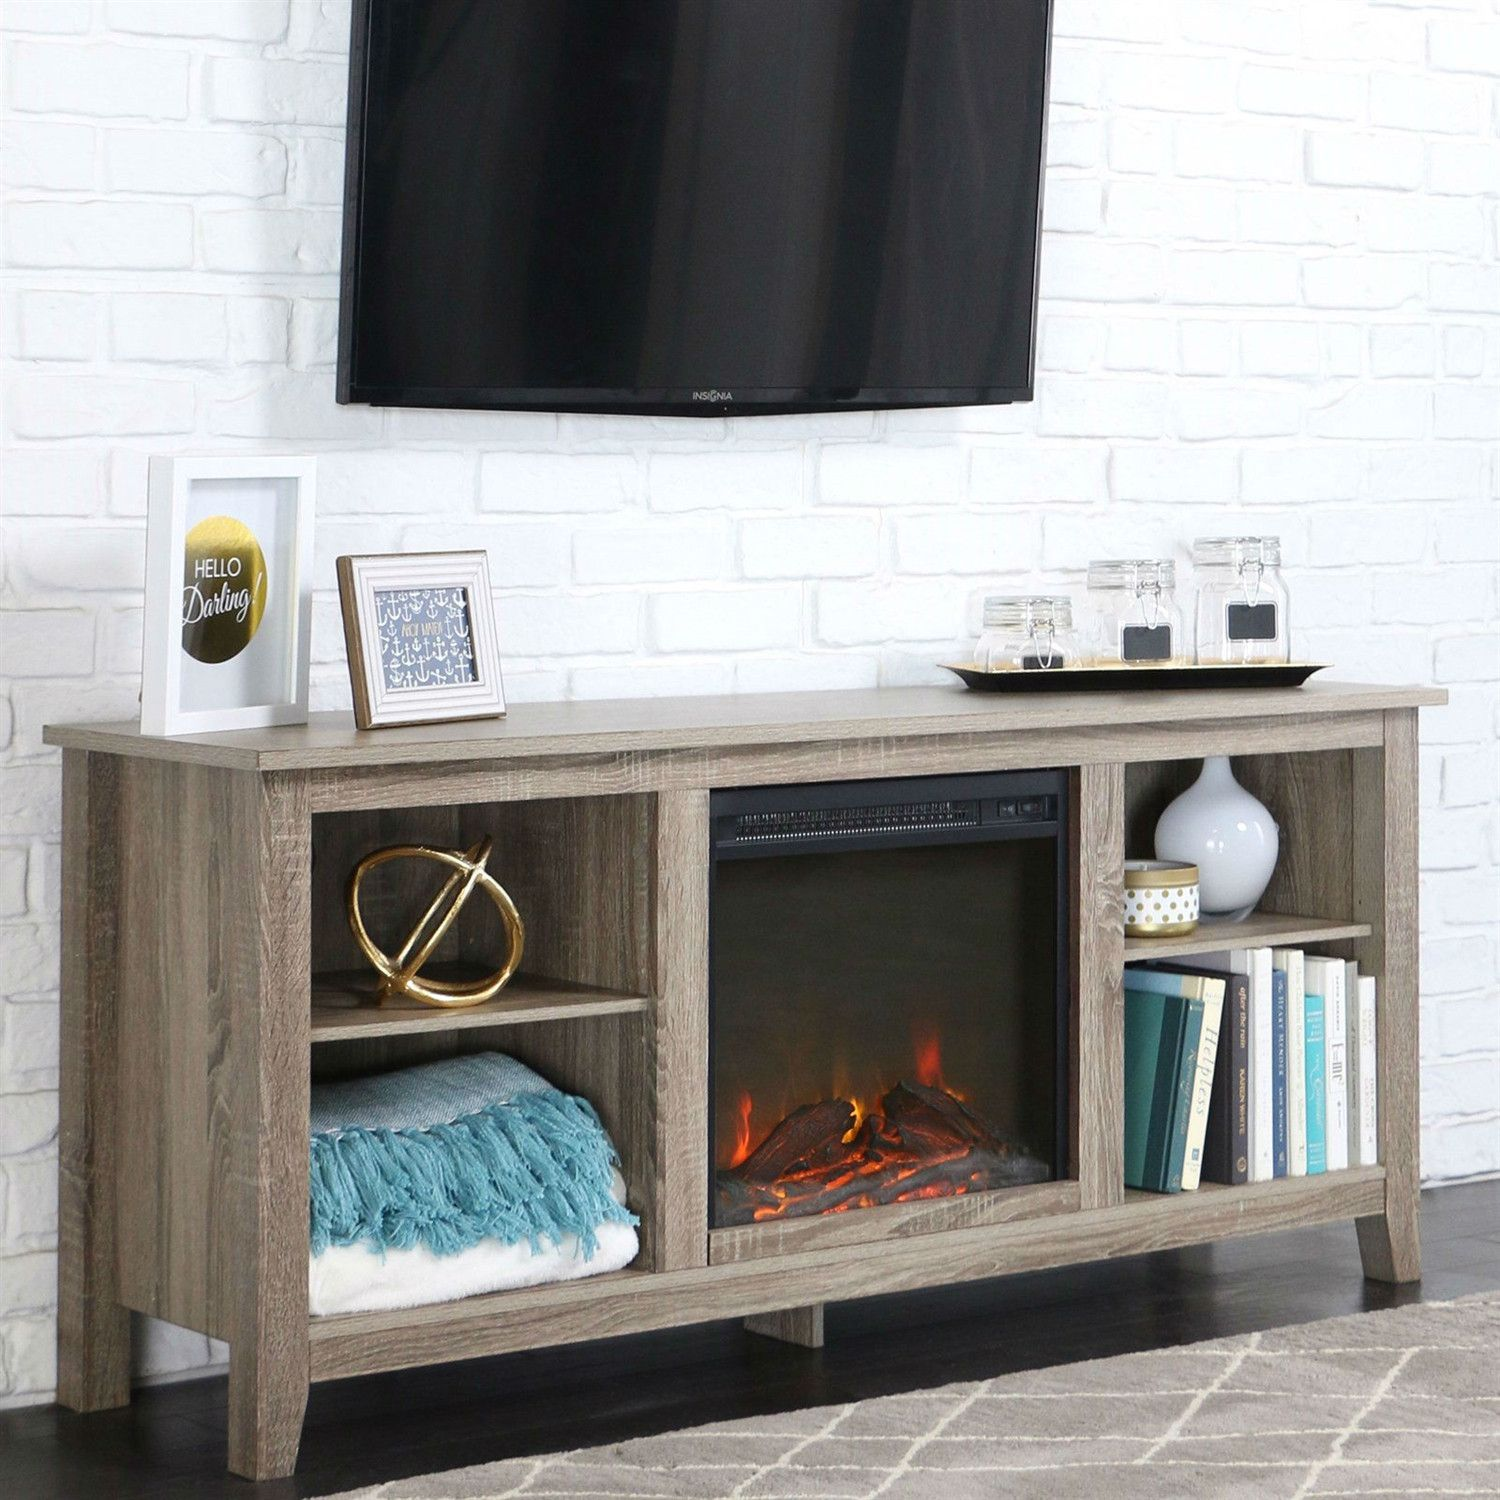 driftwood 58 inch electric fireplace tv stand space heater